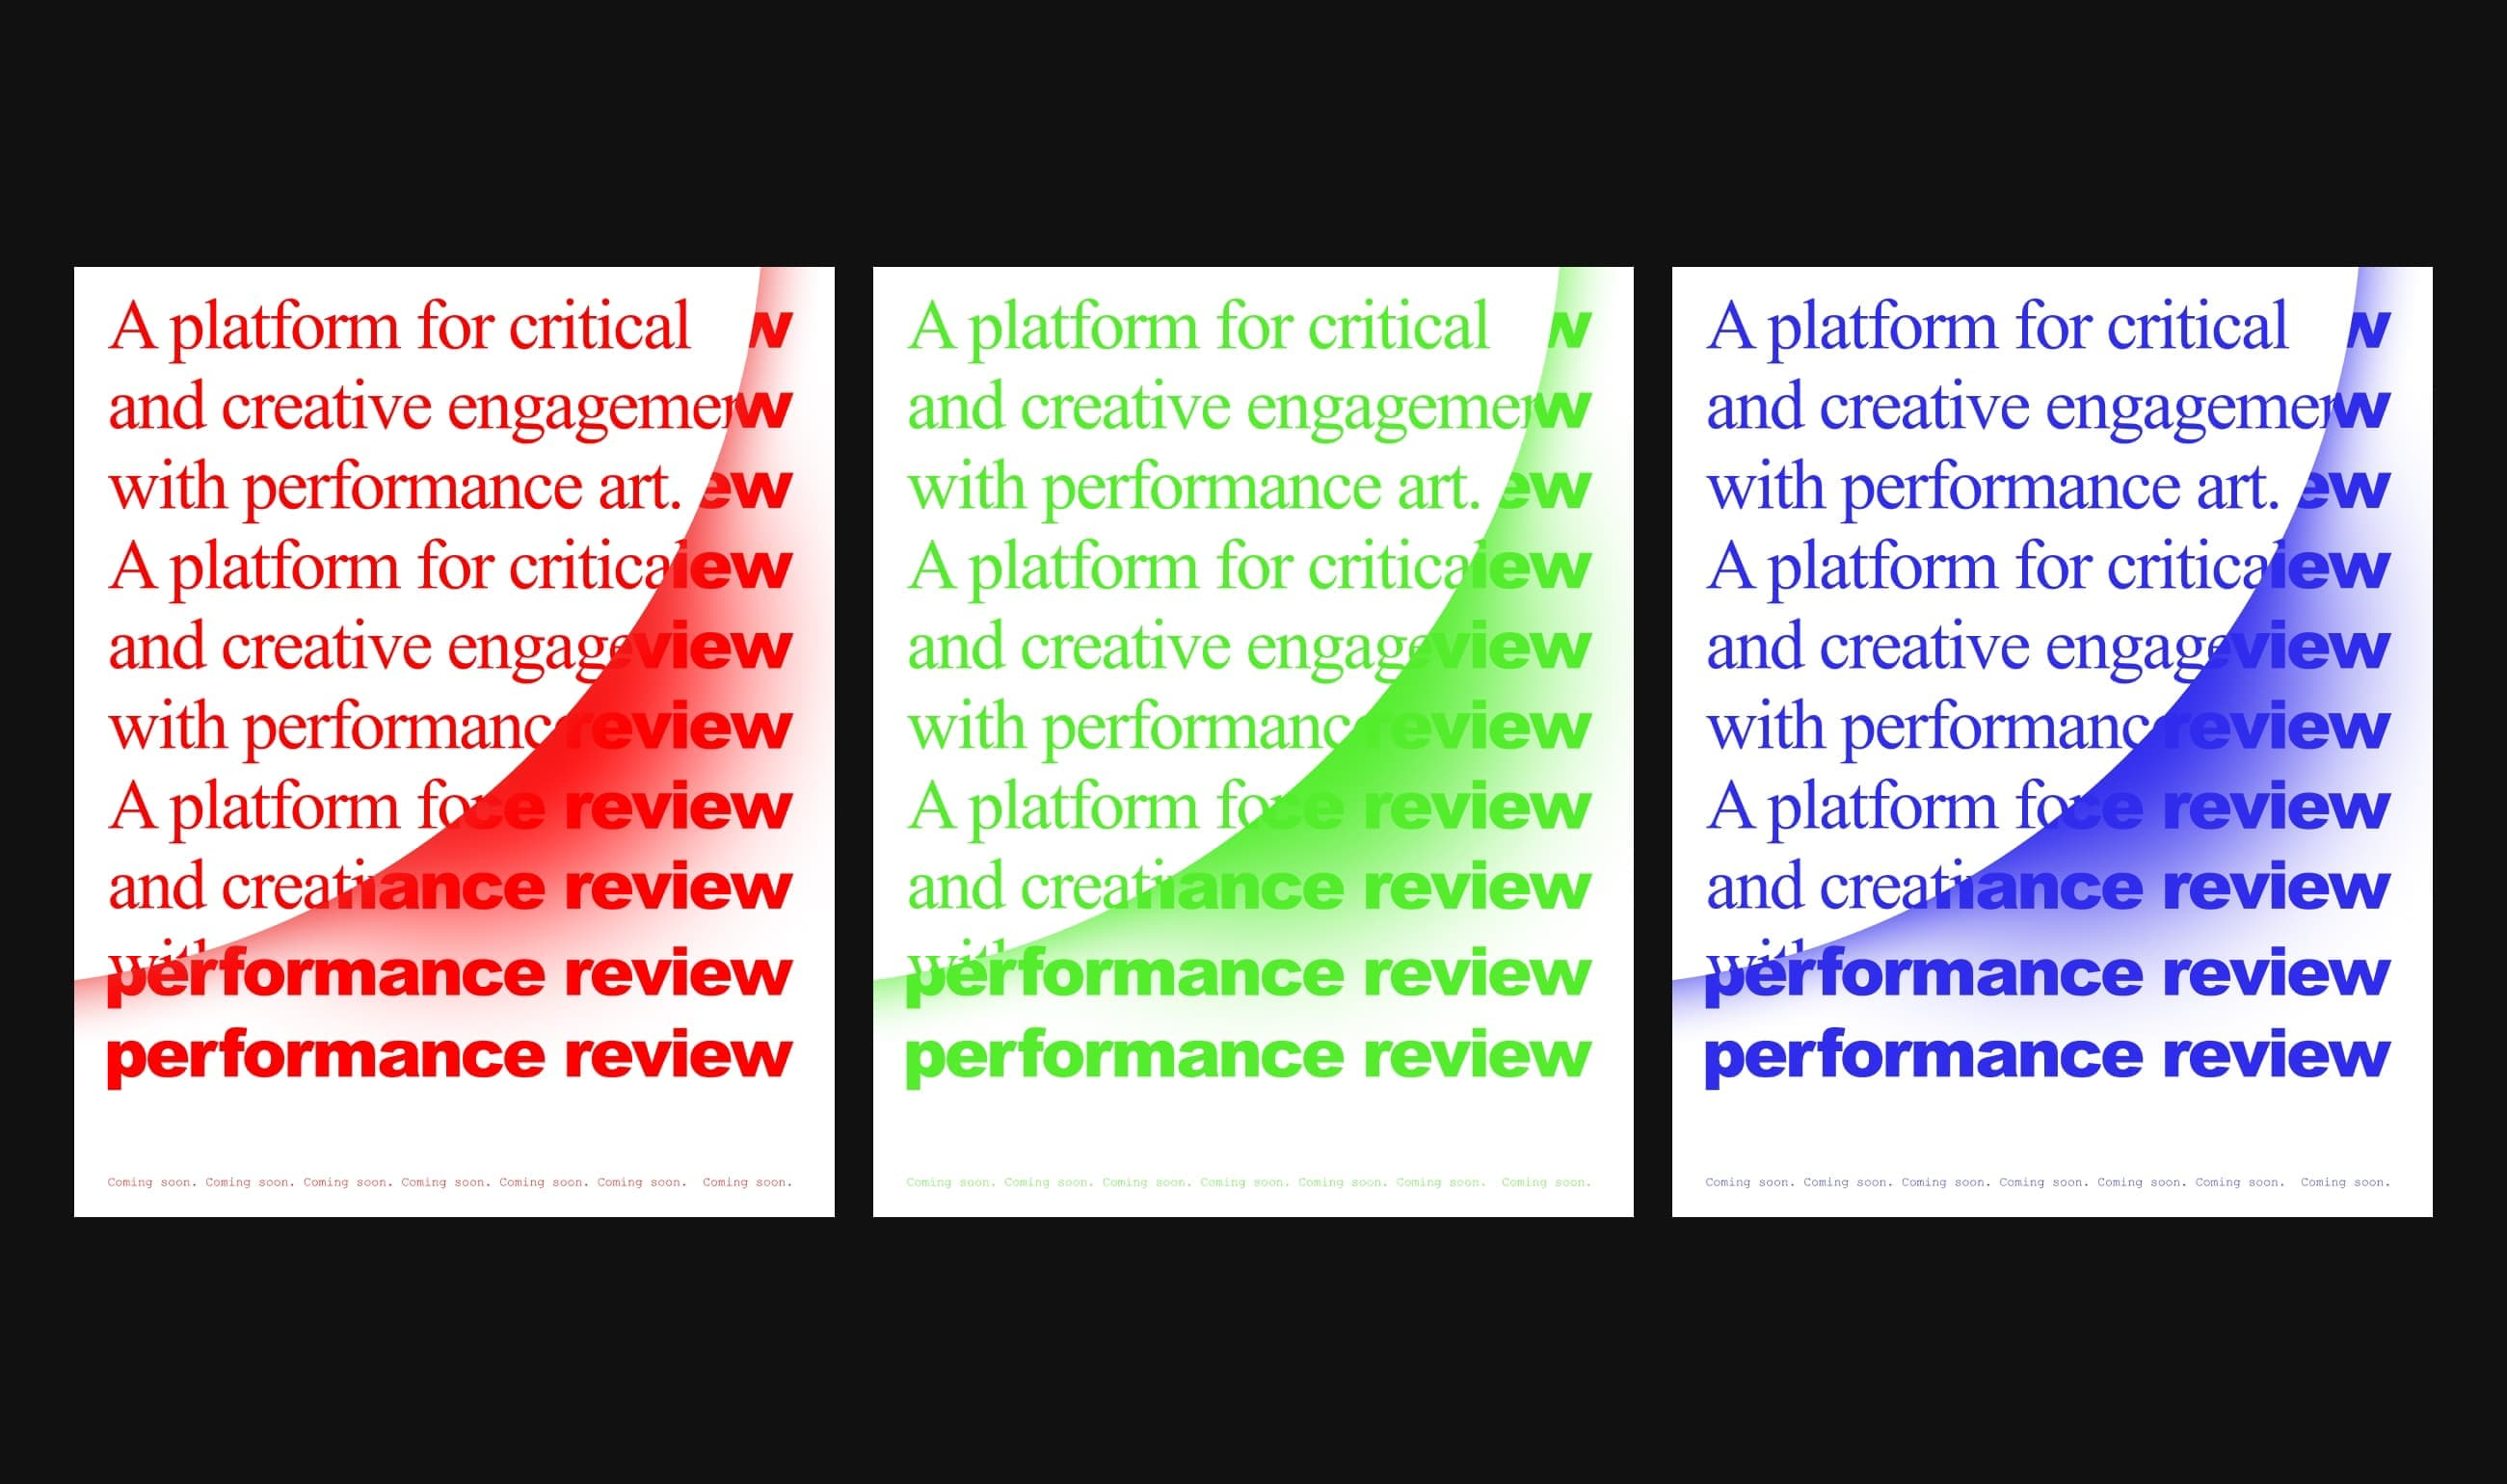 Performance Review documentation image